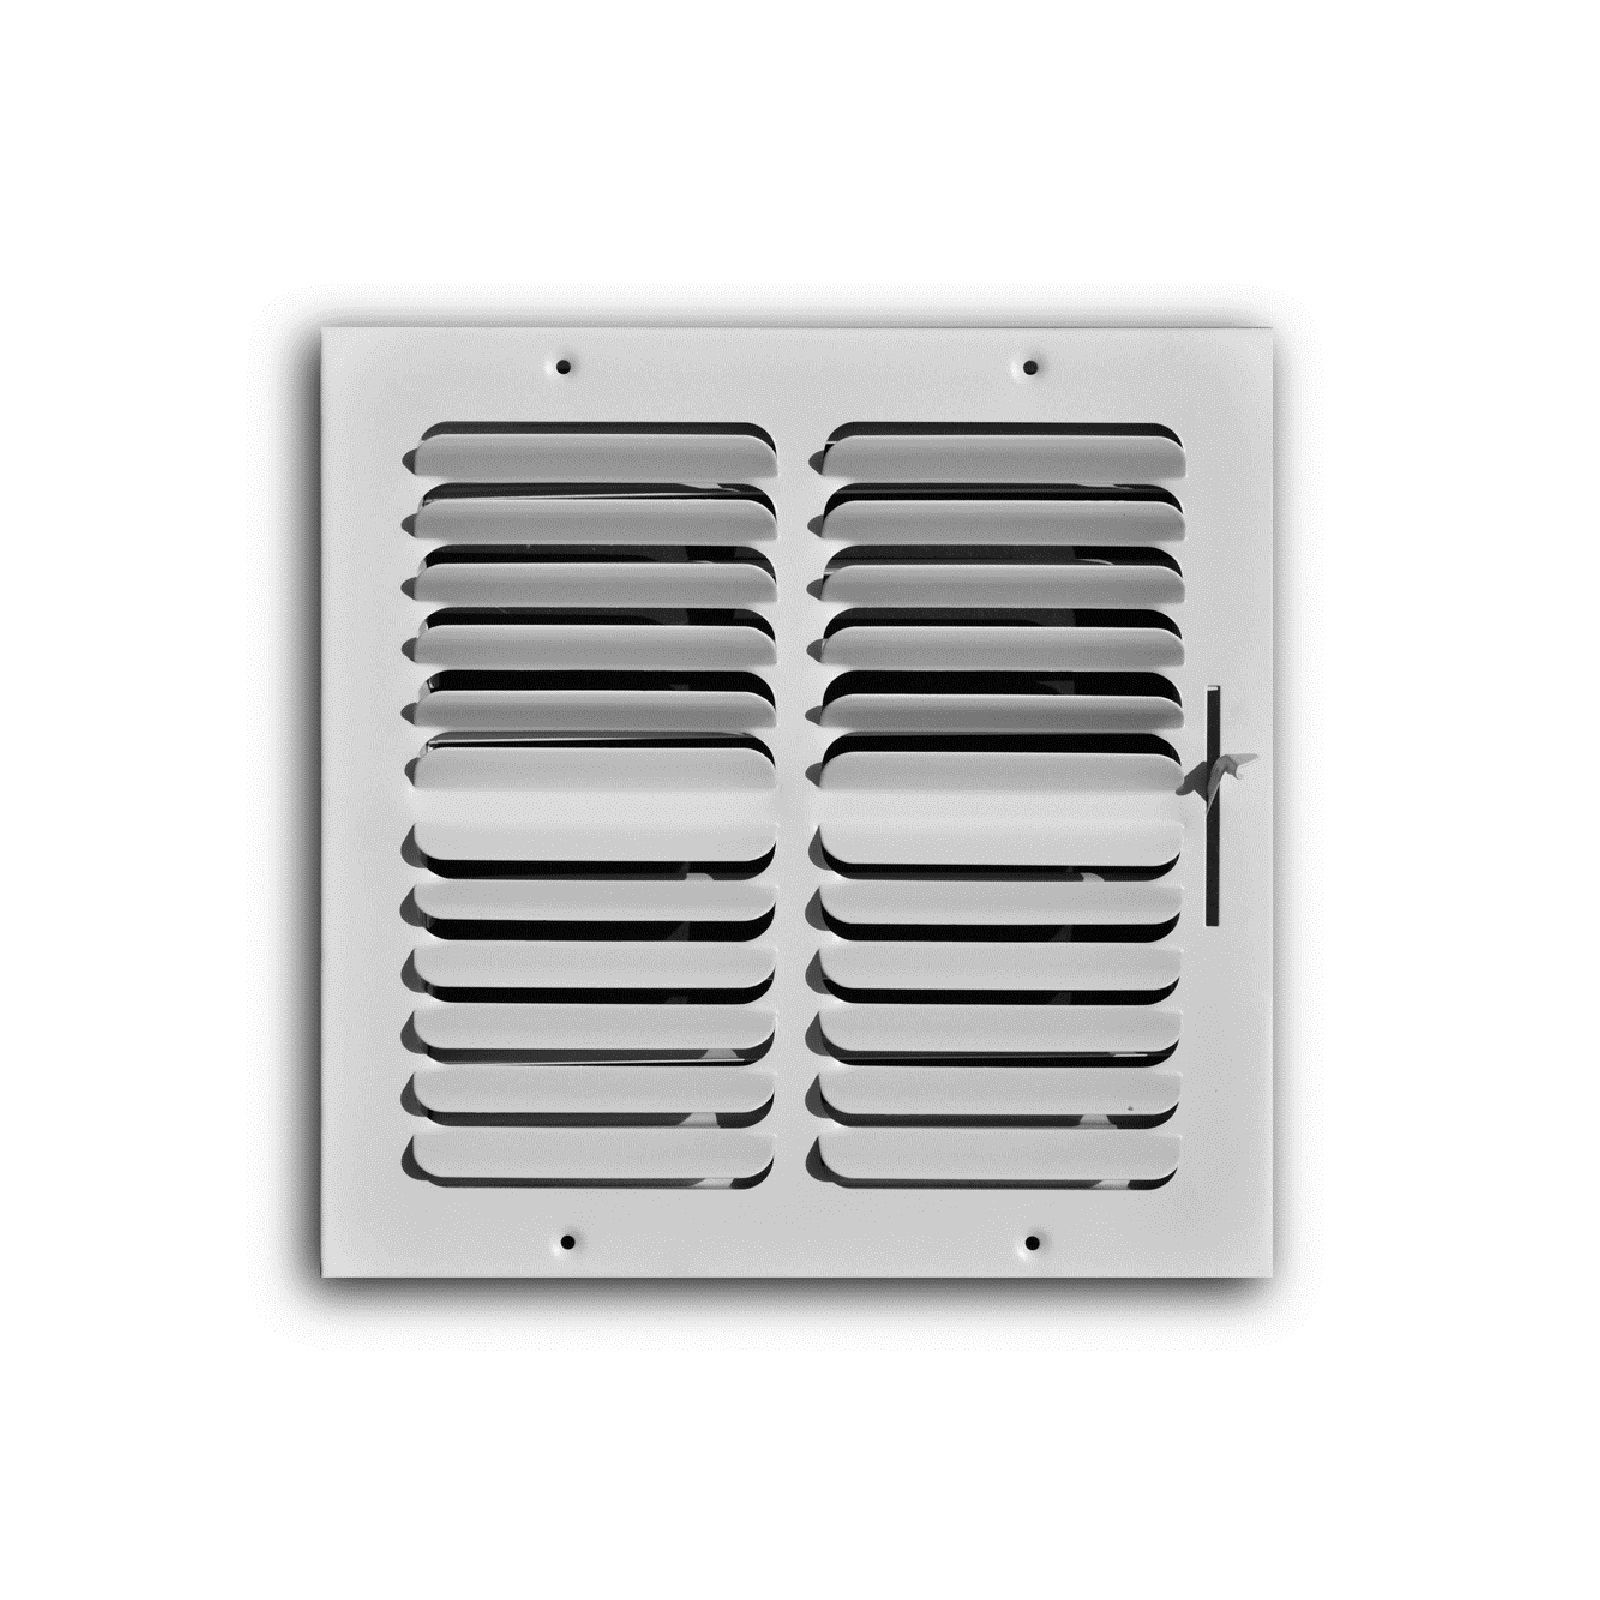 "TRUaire 402M 14X06 - Fixed Curved Blade Wall/Ceiling Register With Multi Shutter Damper, 2 Way, White, 14"" x 06"""